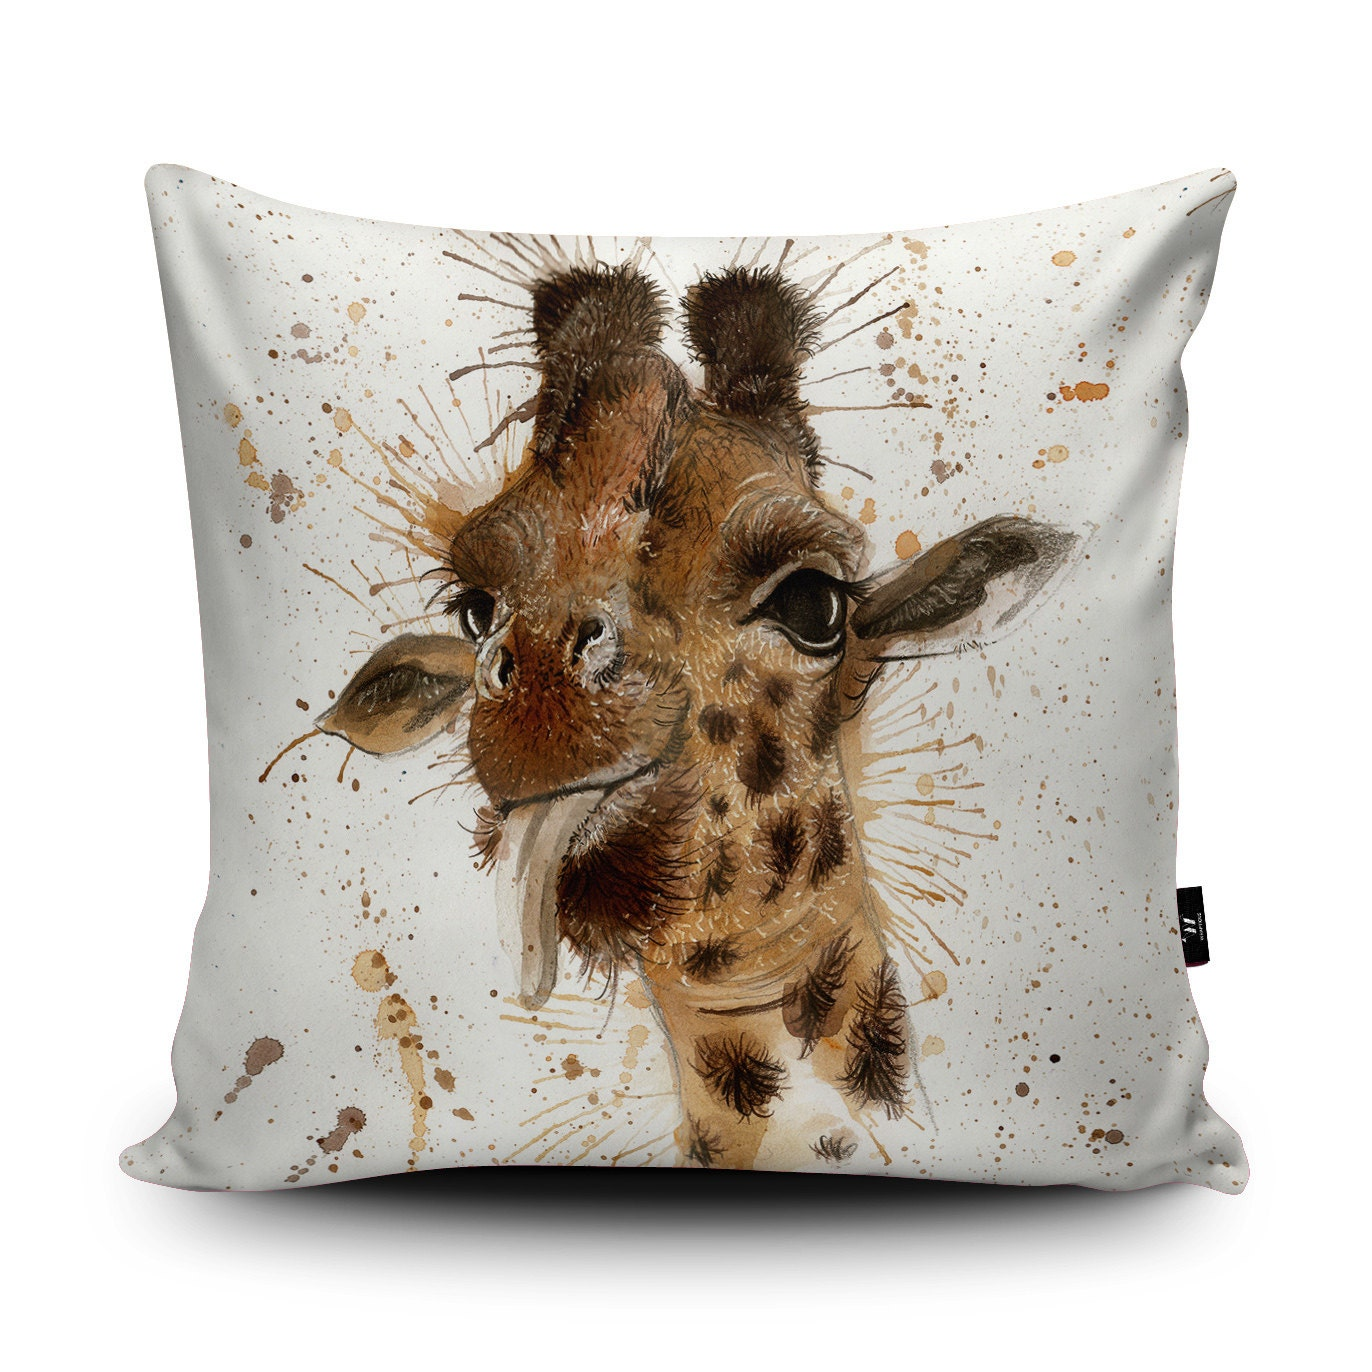 Giraffe Decorative Pillow : Giraffe Cushion Giraffe Pillow Giraffe Cushion Cover